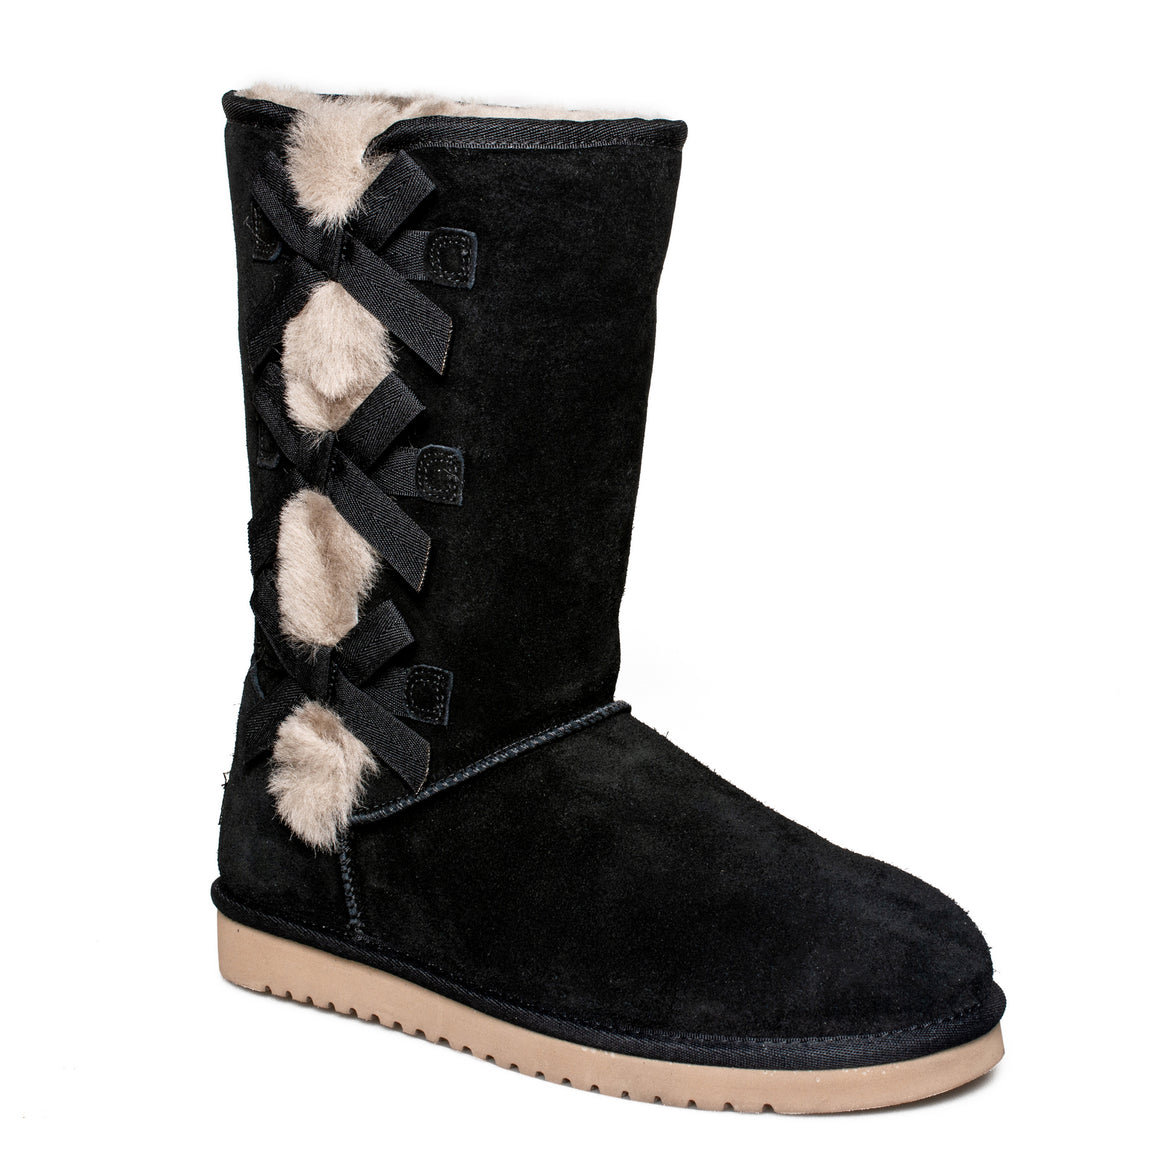 Koolaburra By UGG Victoria Tall Black Boots - Women's